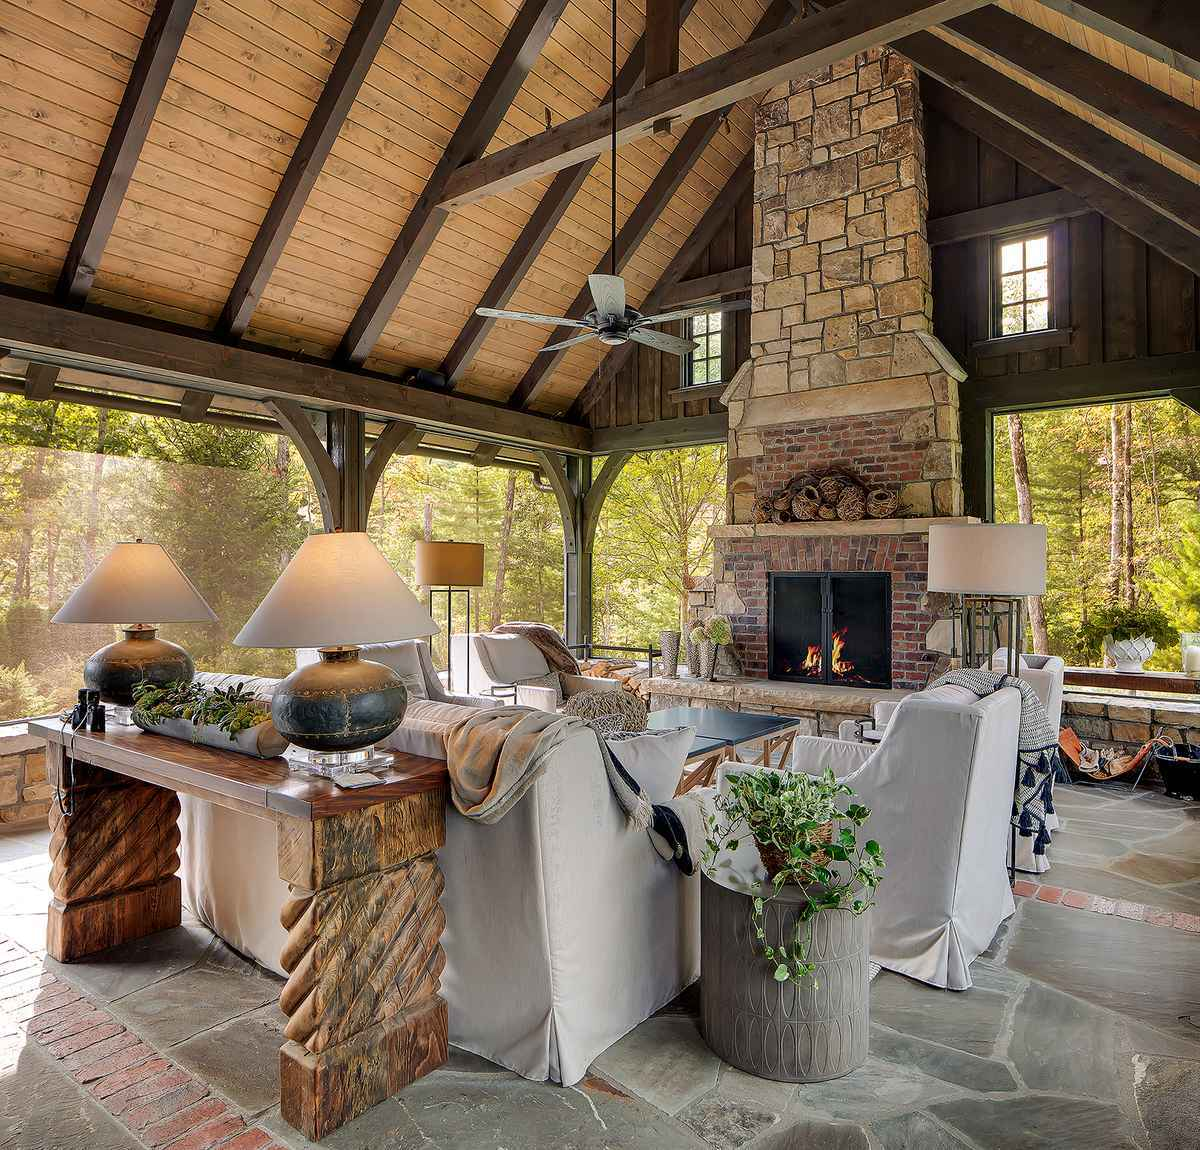 9 Cow Rock Residence - Outdoor seating with fire place